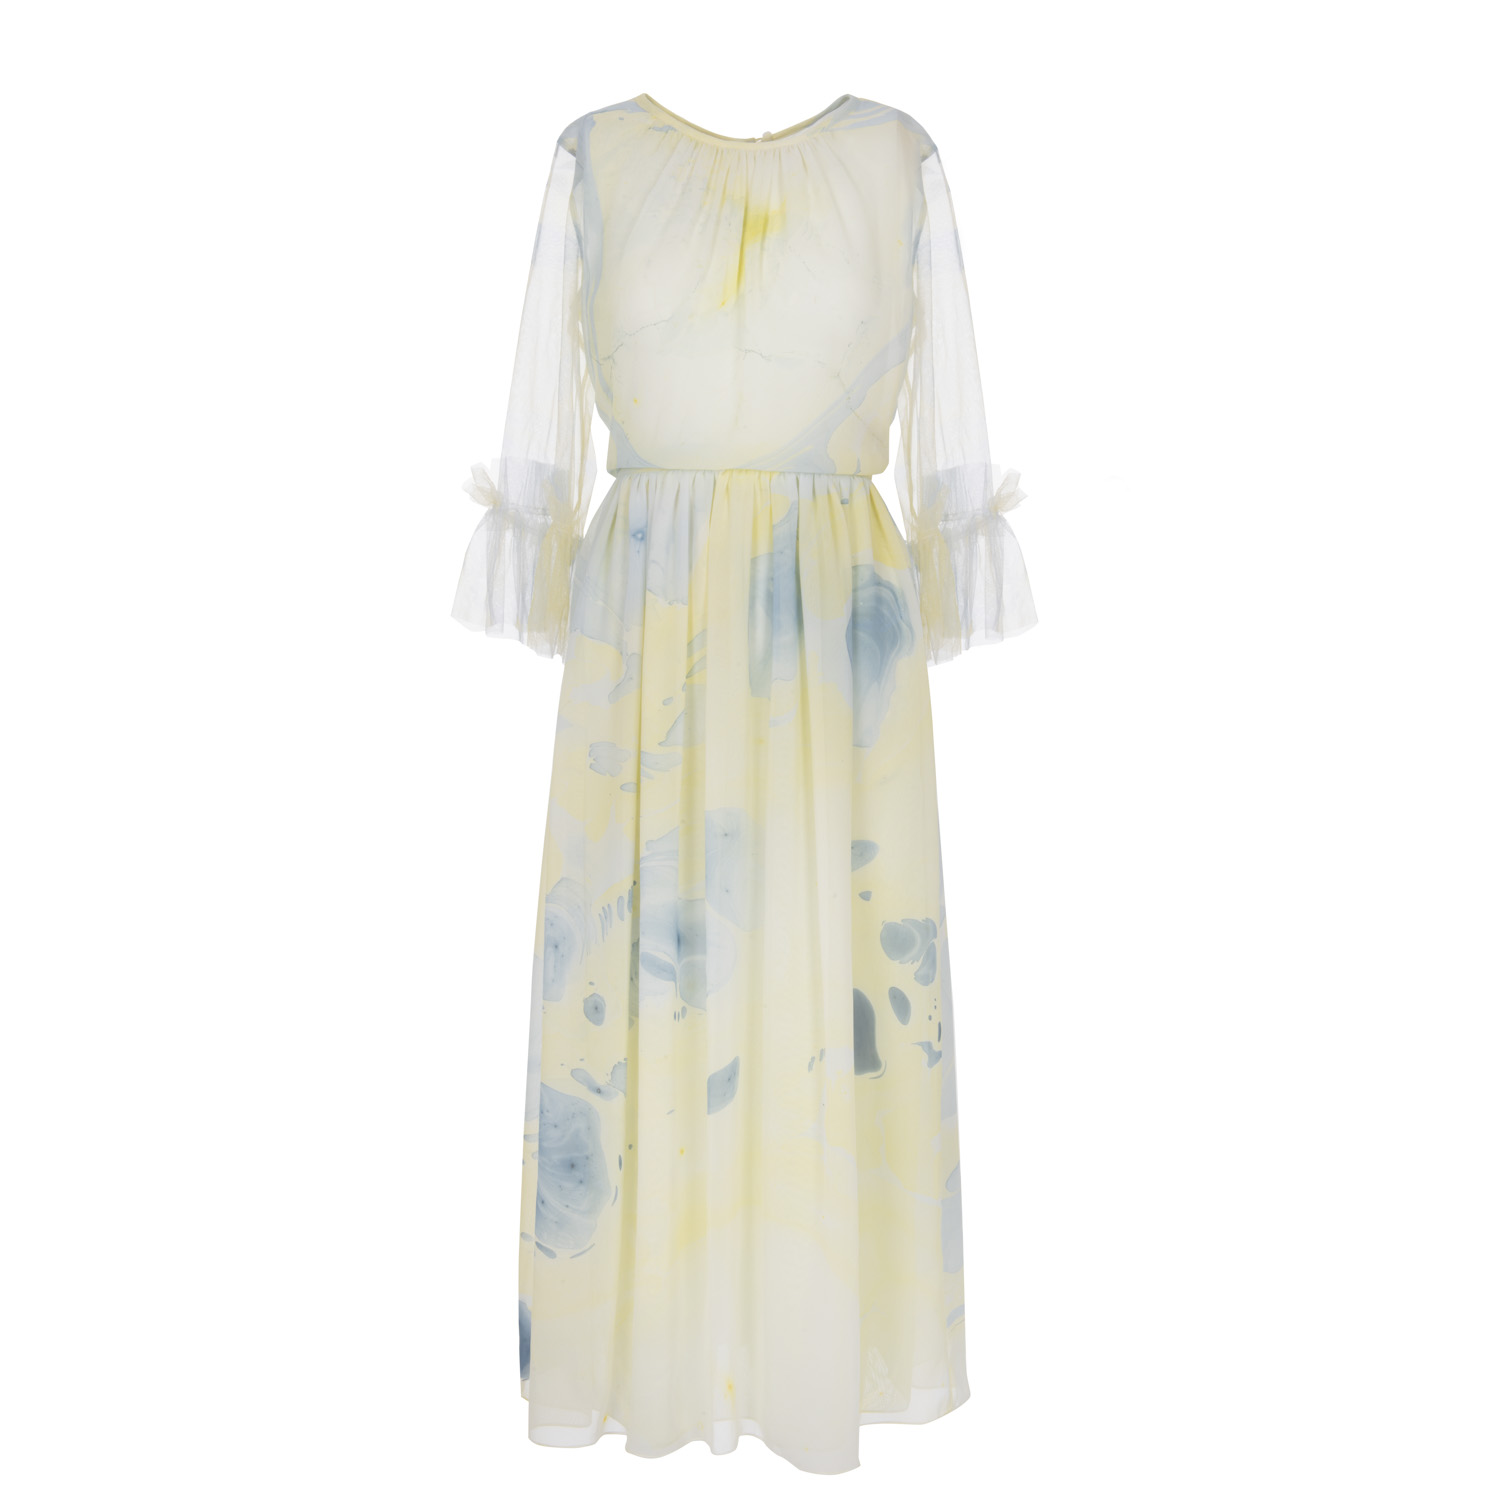 Hand Marbled Gather Dress by Edward Mongzar on curated-crowd.com